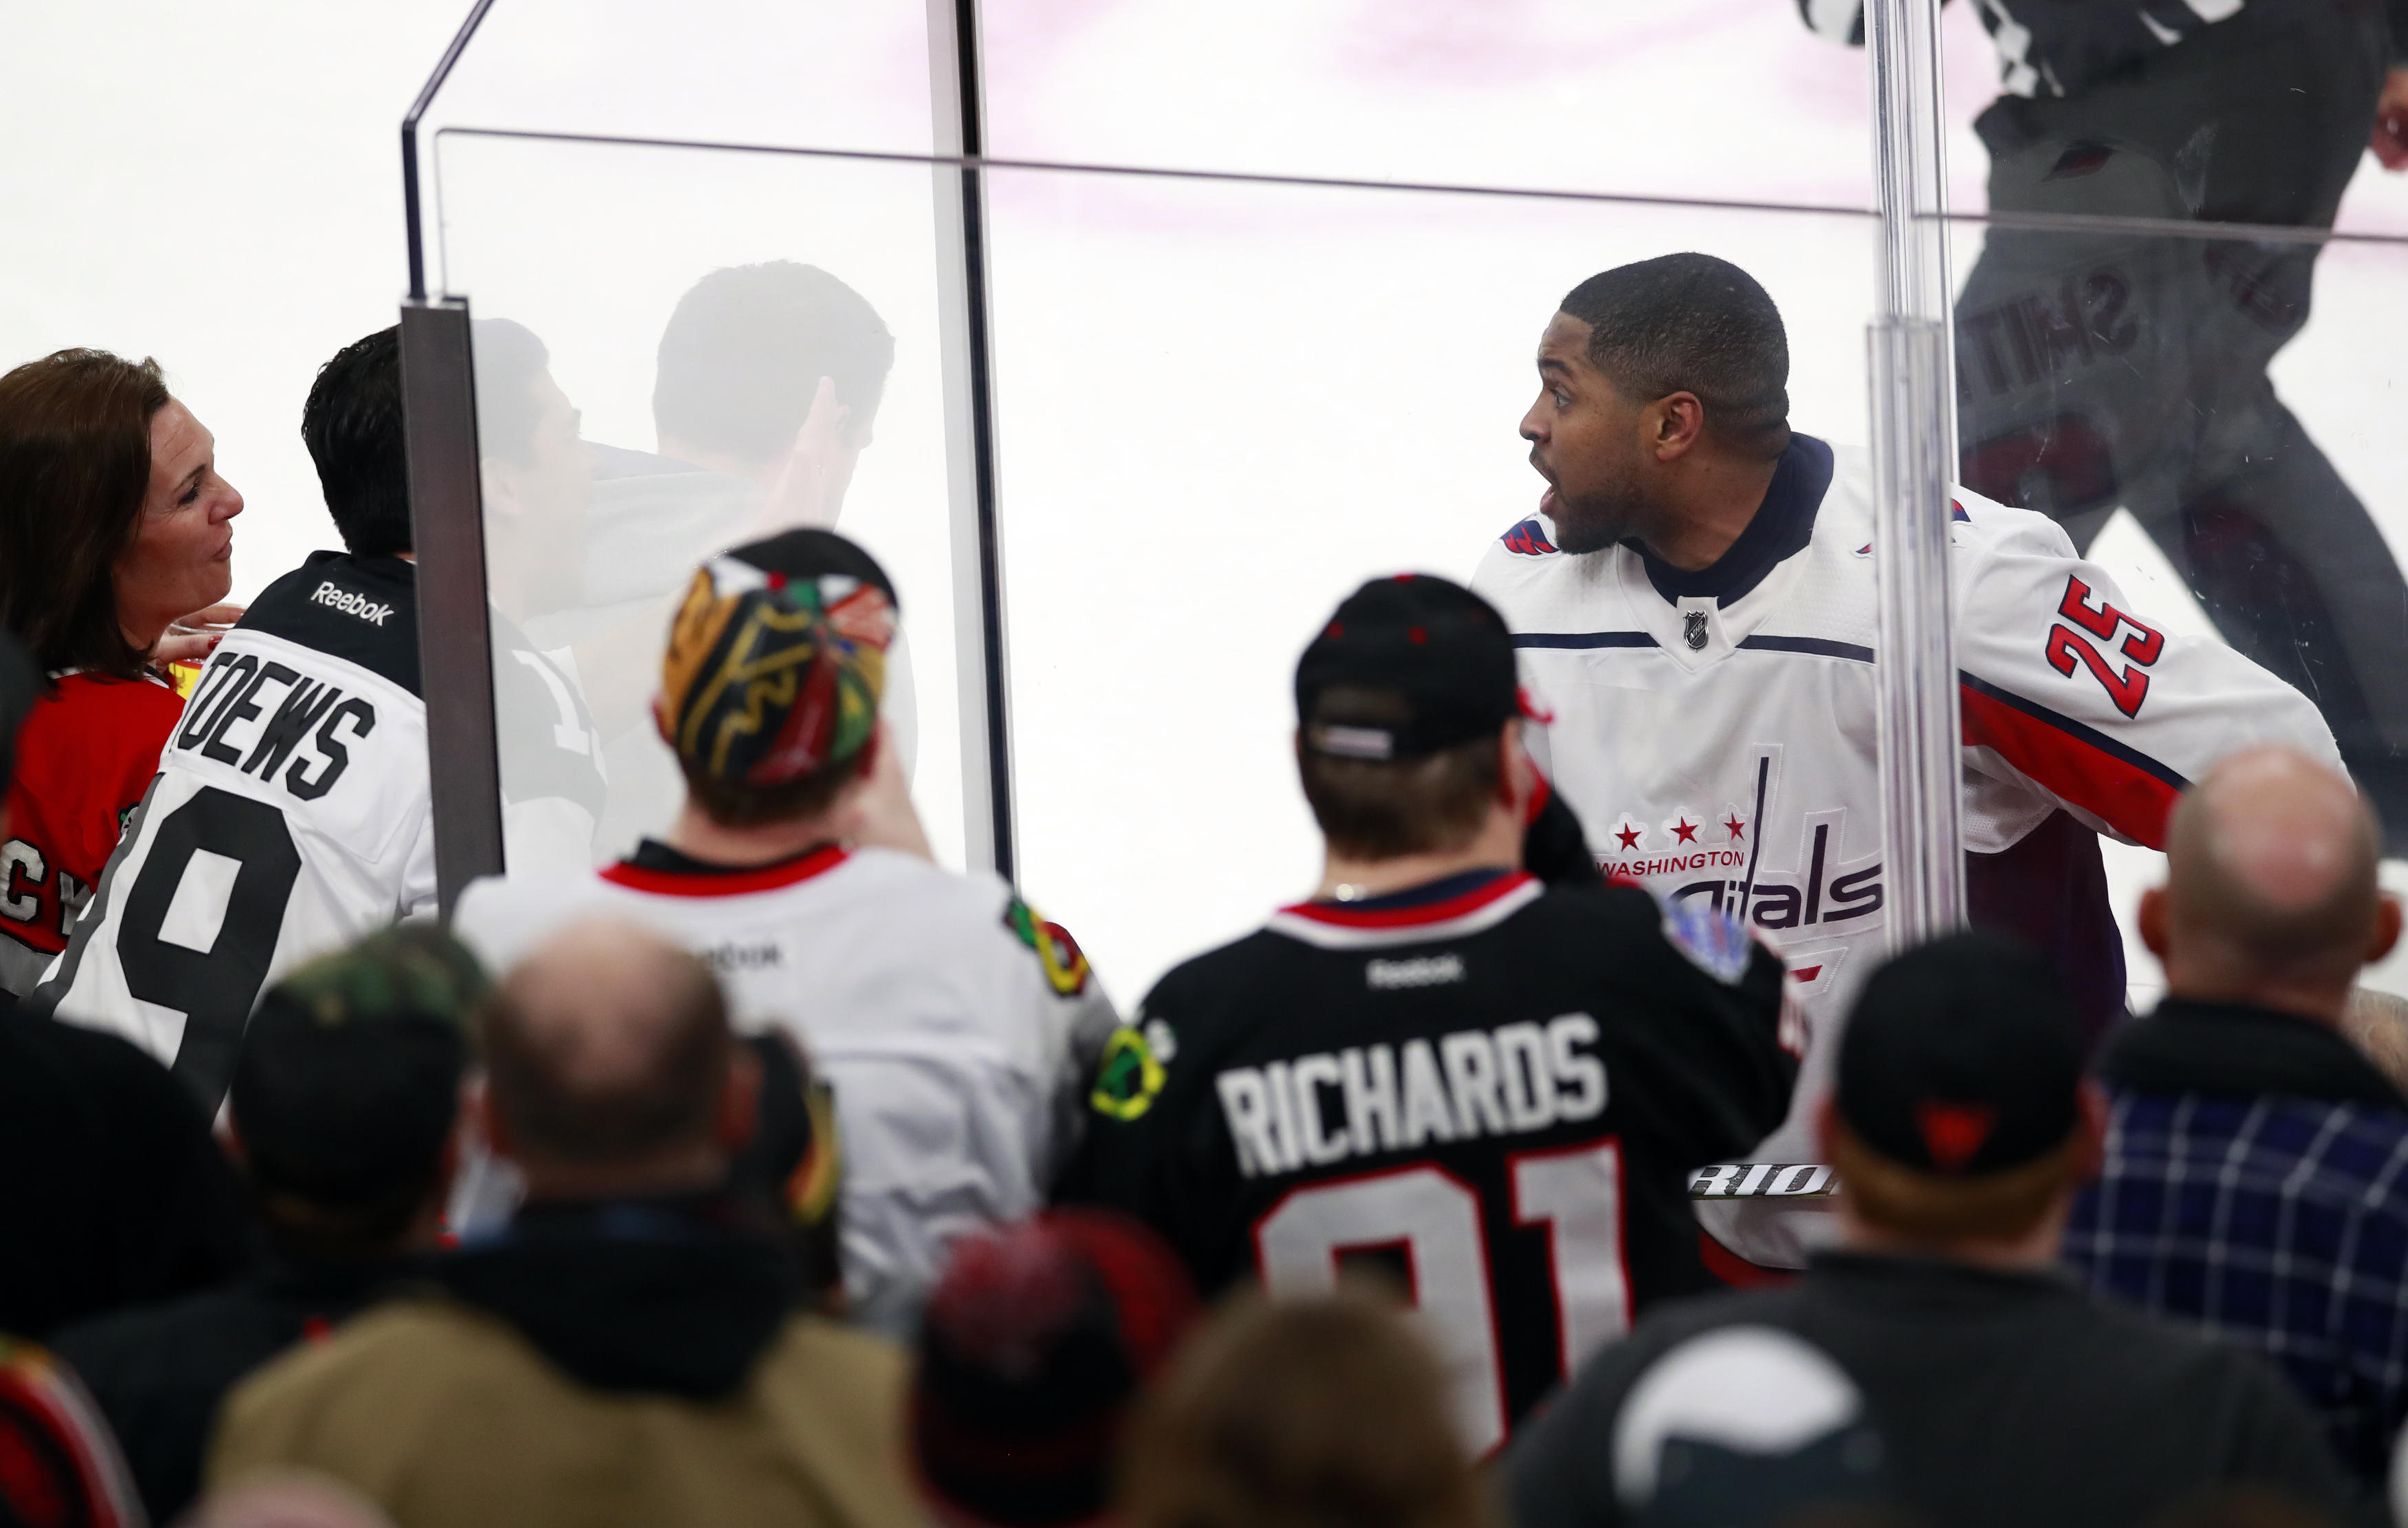 b0f591a1f59 Black NHL player responds to fans  racial taunts - CBS News